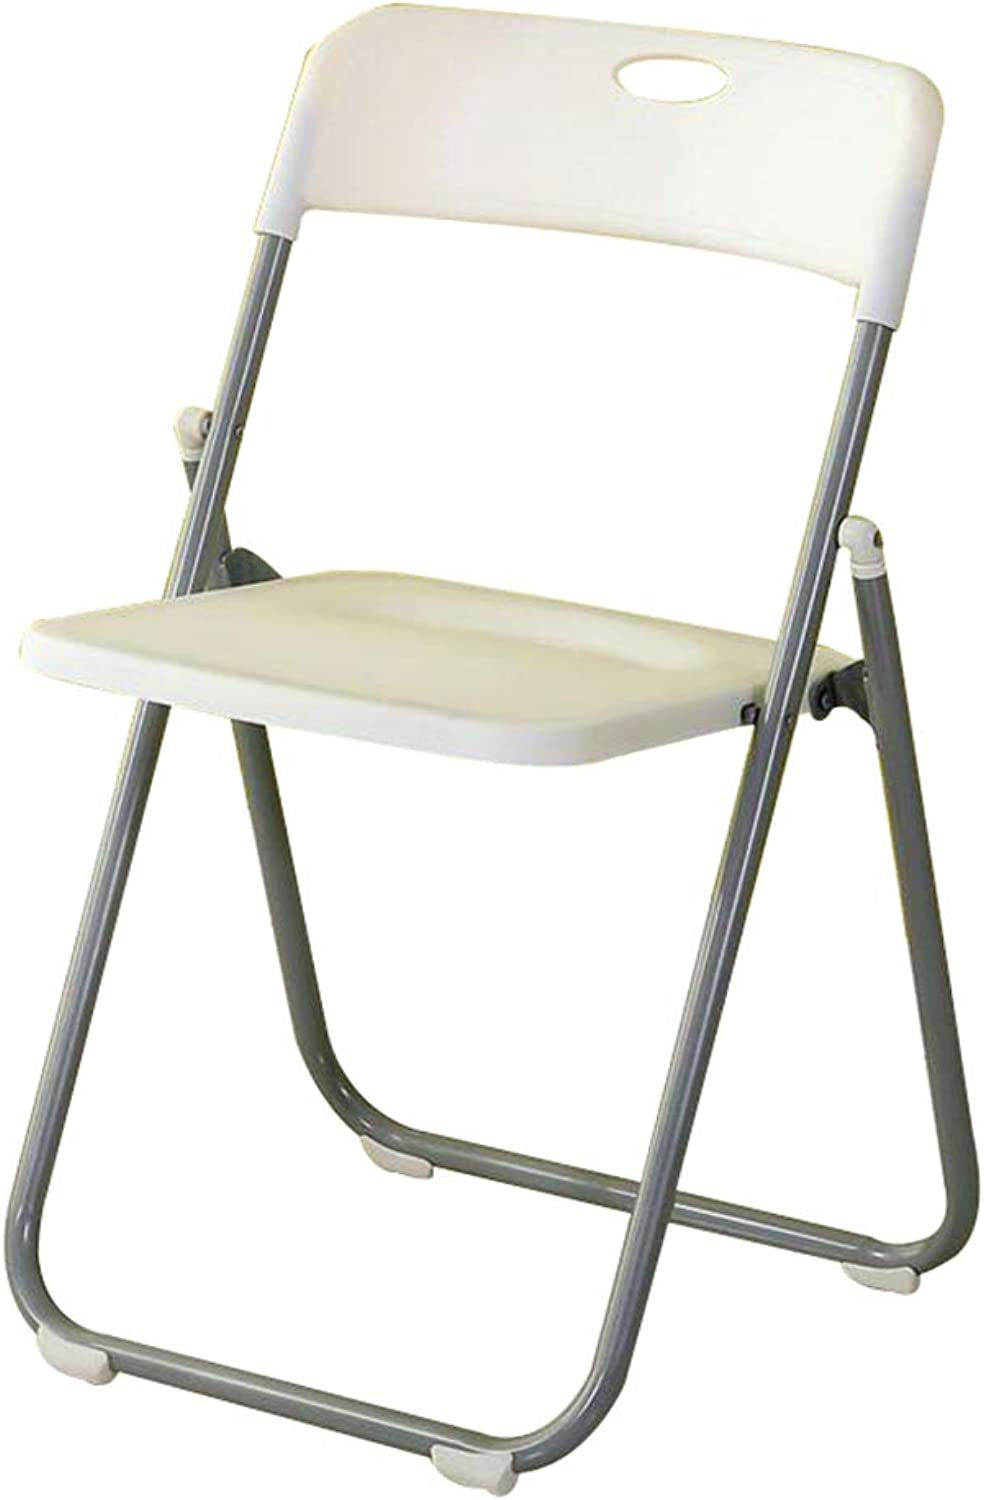 Stool - Folding Chair, Household dinette, Office Training Chair Bath Chair Meeting Room Chair (color   White)